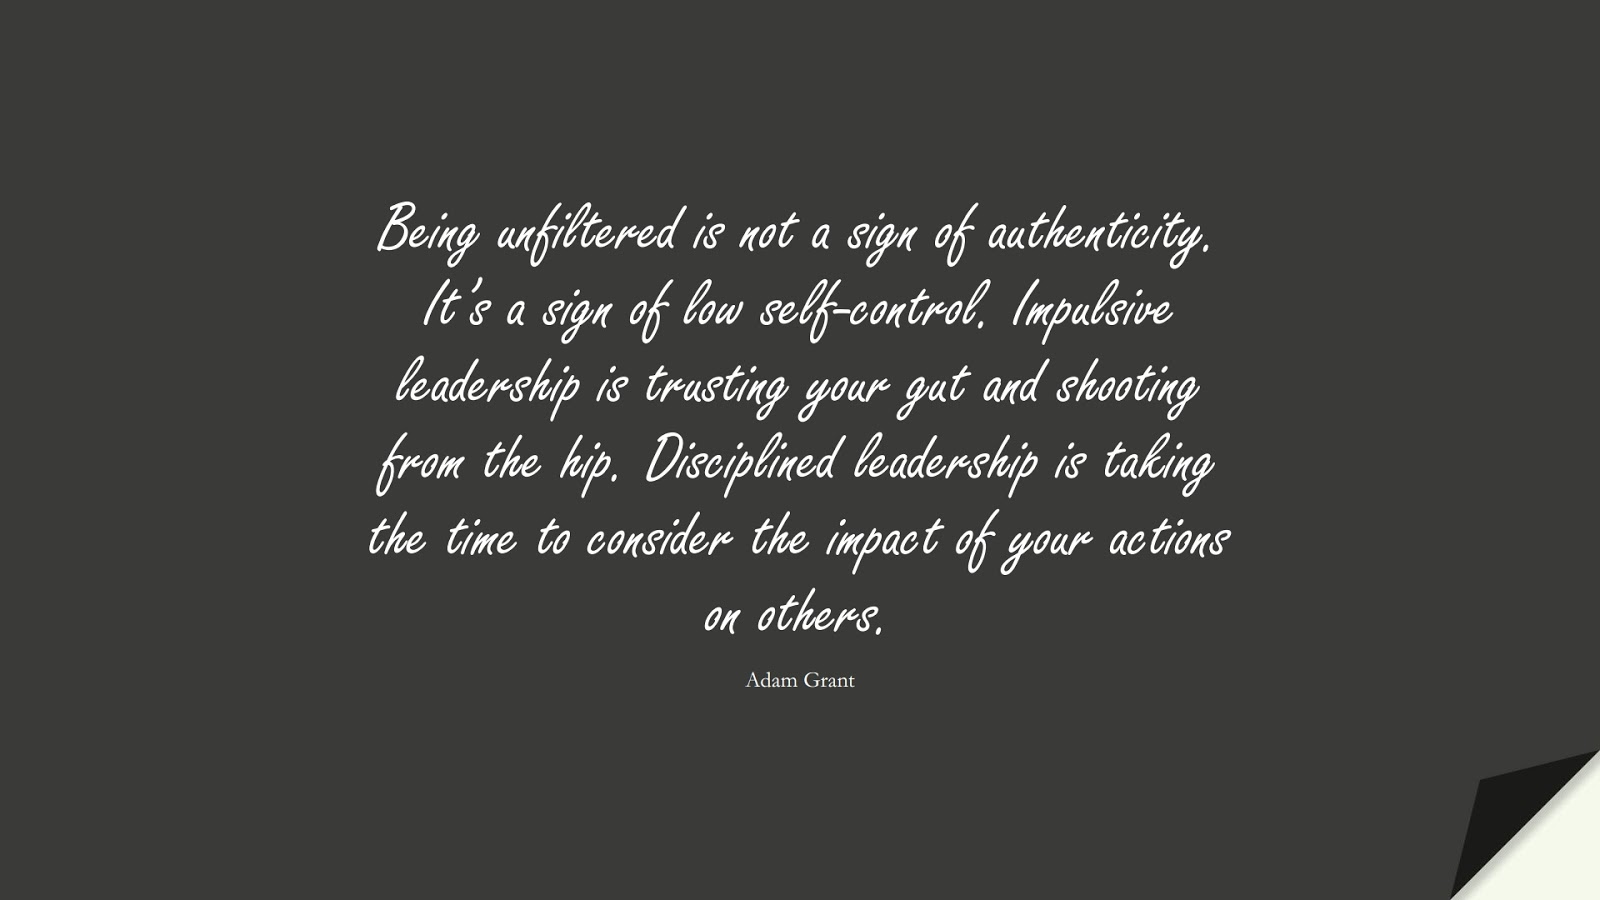 Being unfiltered is not a sign of authenticity. It's a sign of low self-control. Impulsive leadership is trusting your gut and shooting from the hip. Disciplined leadership is taking the time to consider the impact of your actions on others. (Adam Grant);  #CharacterQuotes